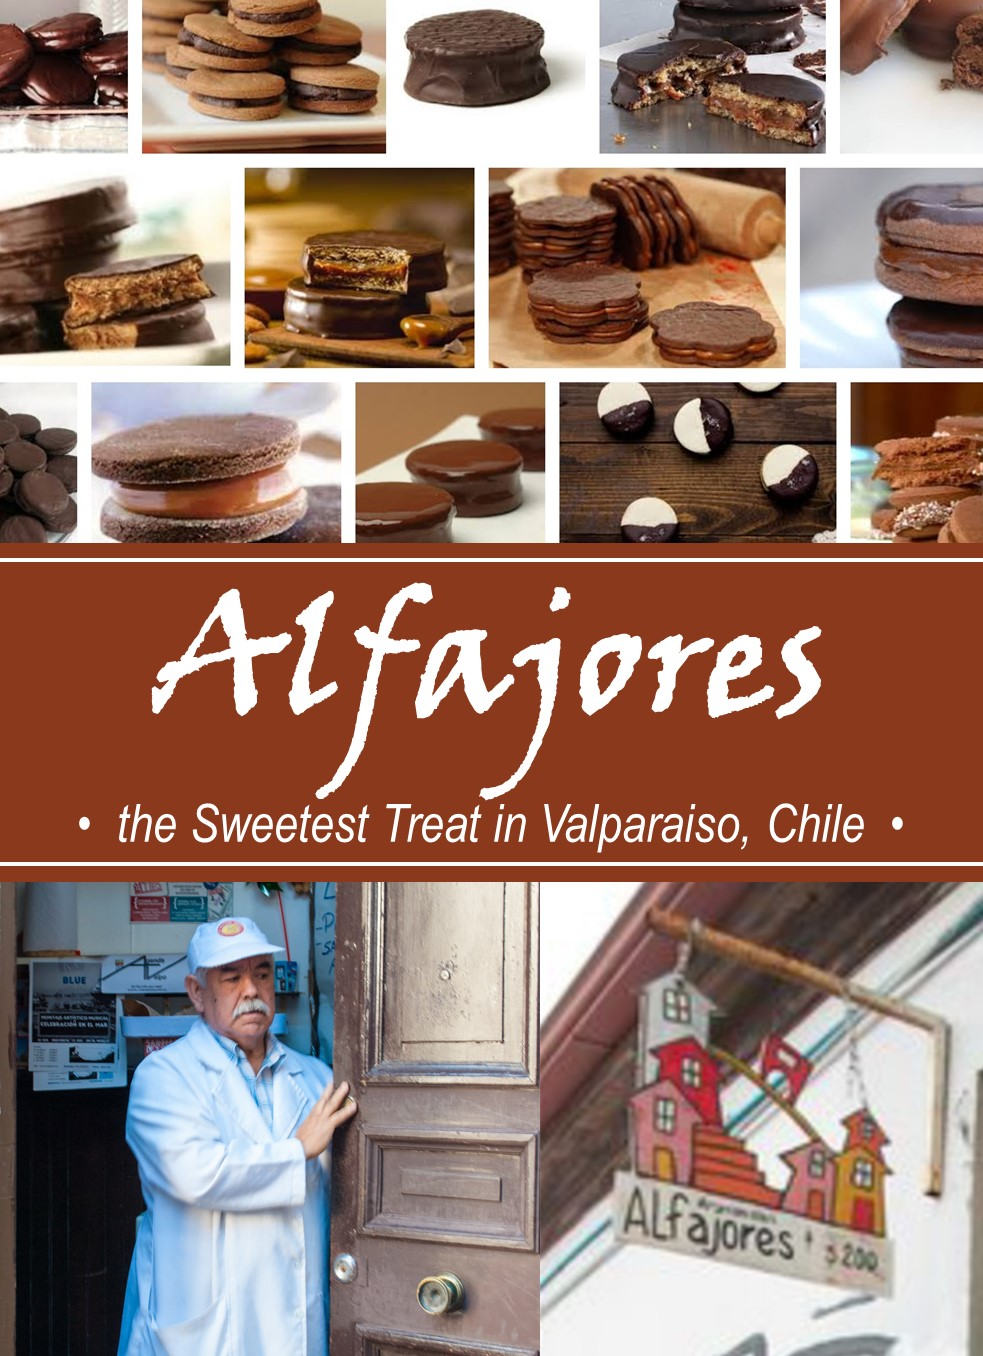 The most decadent alfajores (chocolate-dipped caramel cookies) you will ever eat are hidden in an alleyway high on a hill in Valparaiso, Chile.